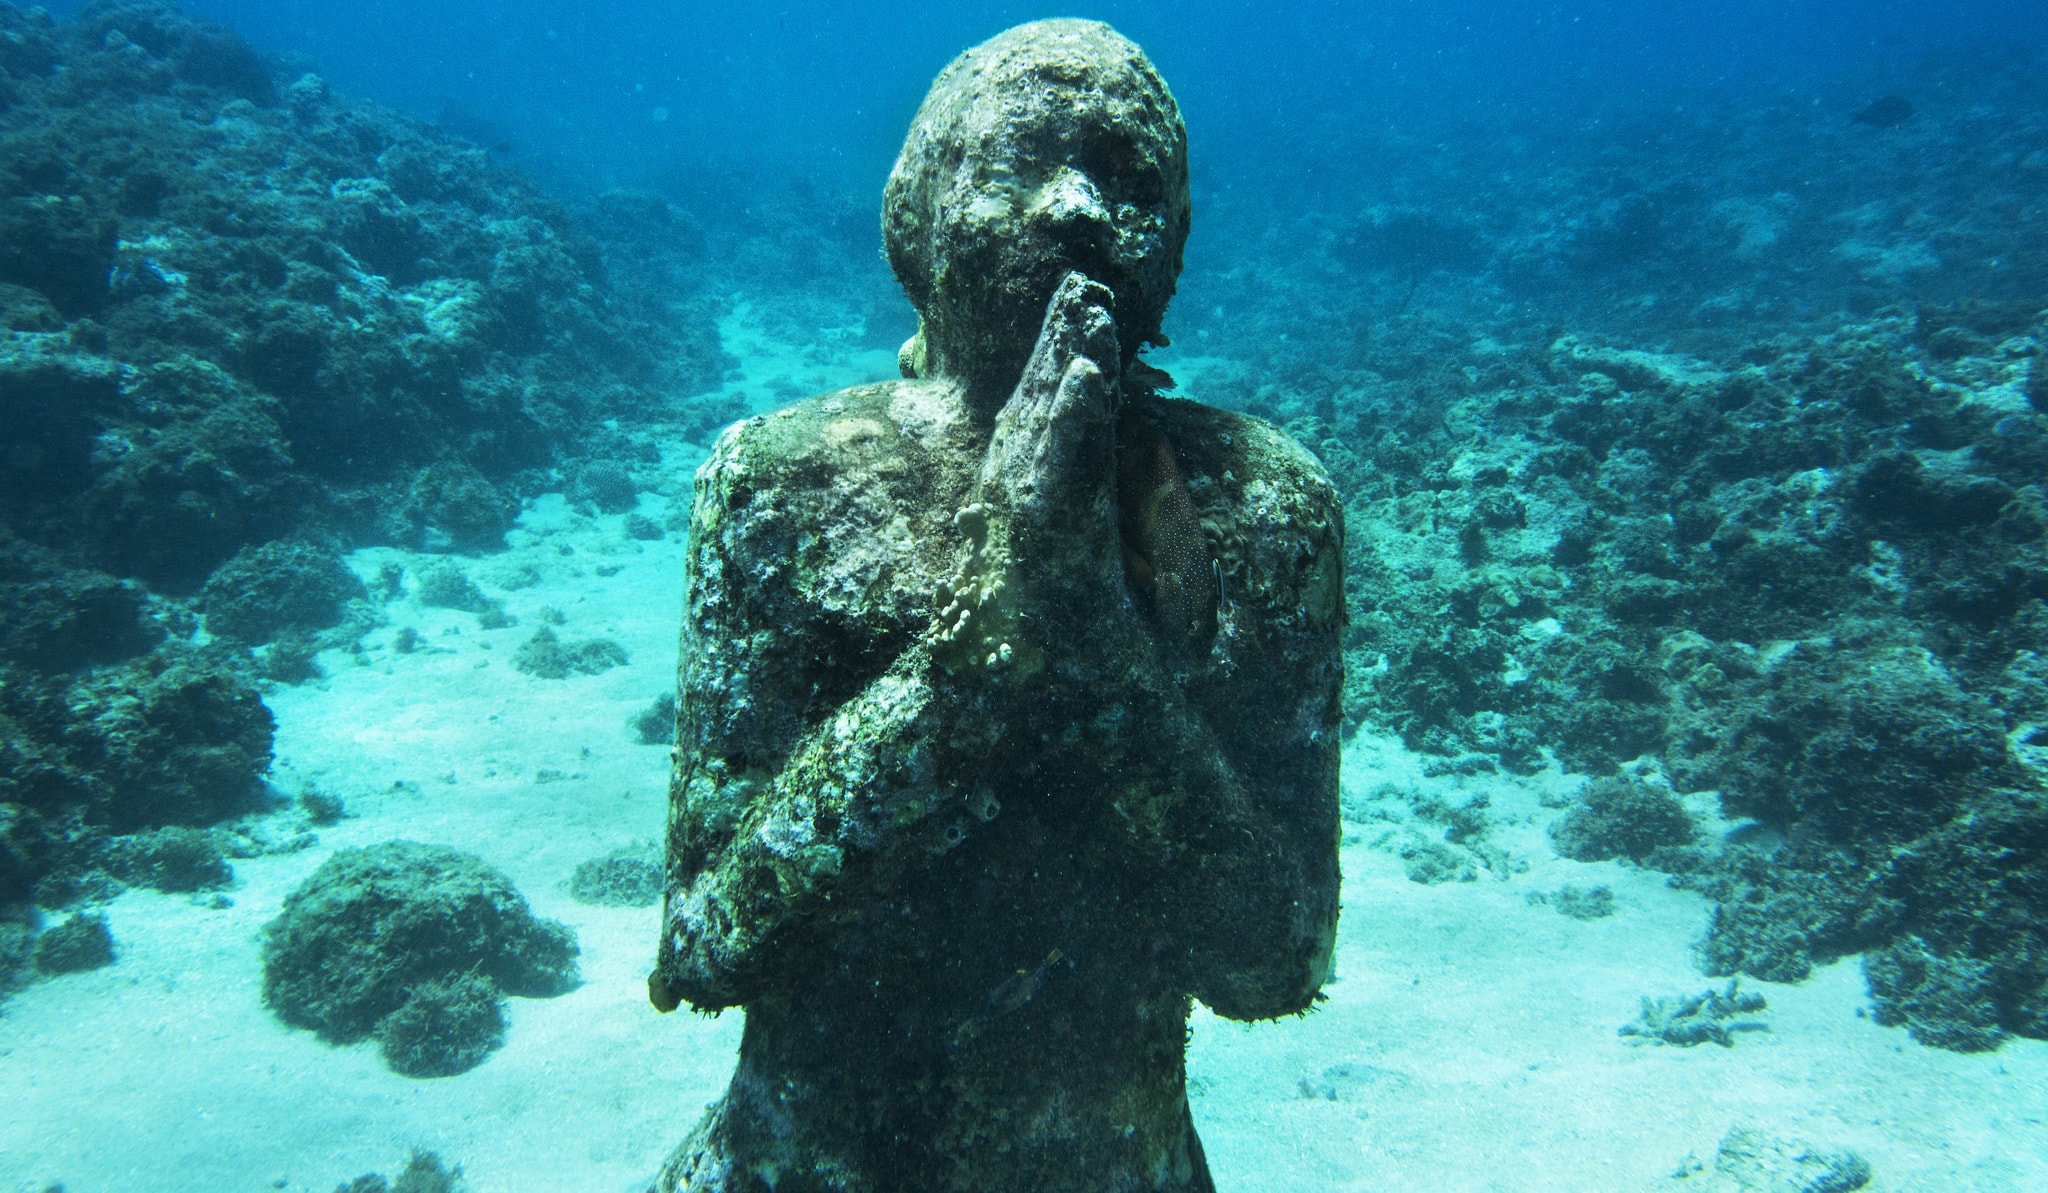 Underwater sculptures at Molinere Bay, Grenada (Photo: UNEP/Flickr)